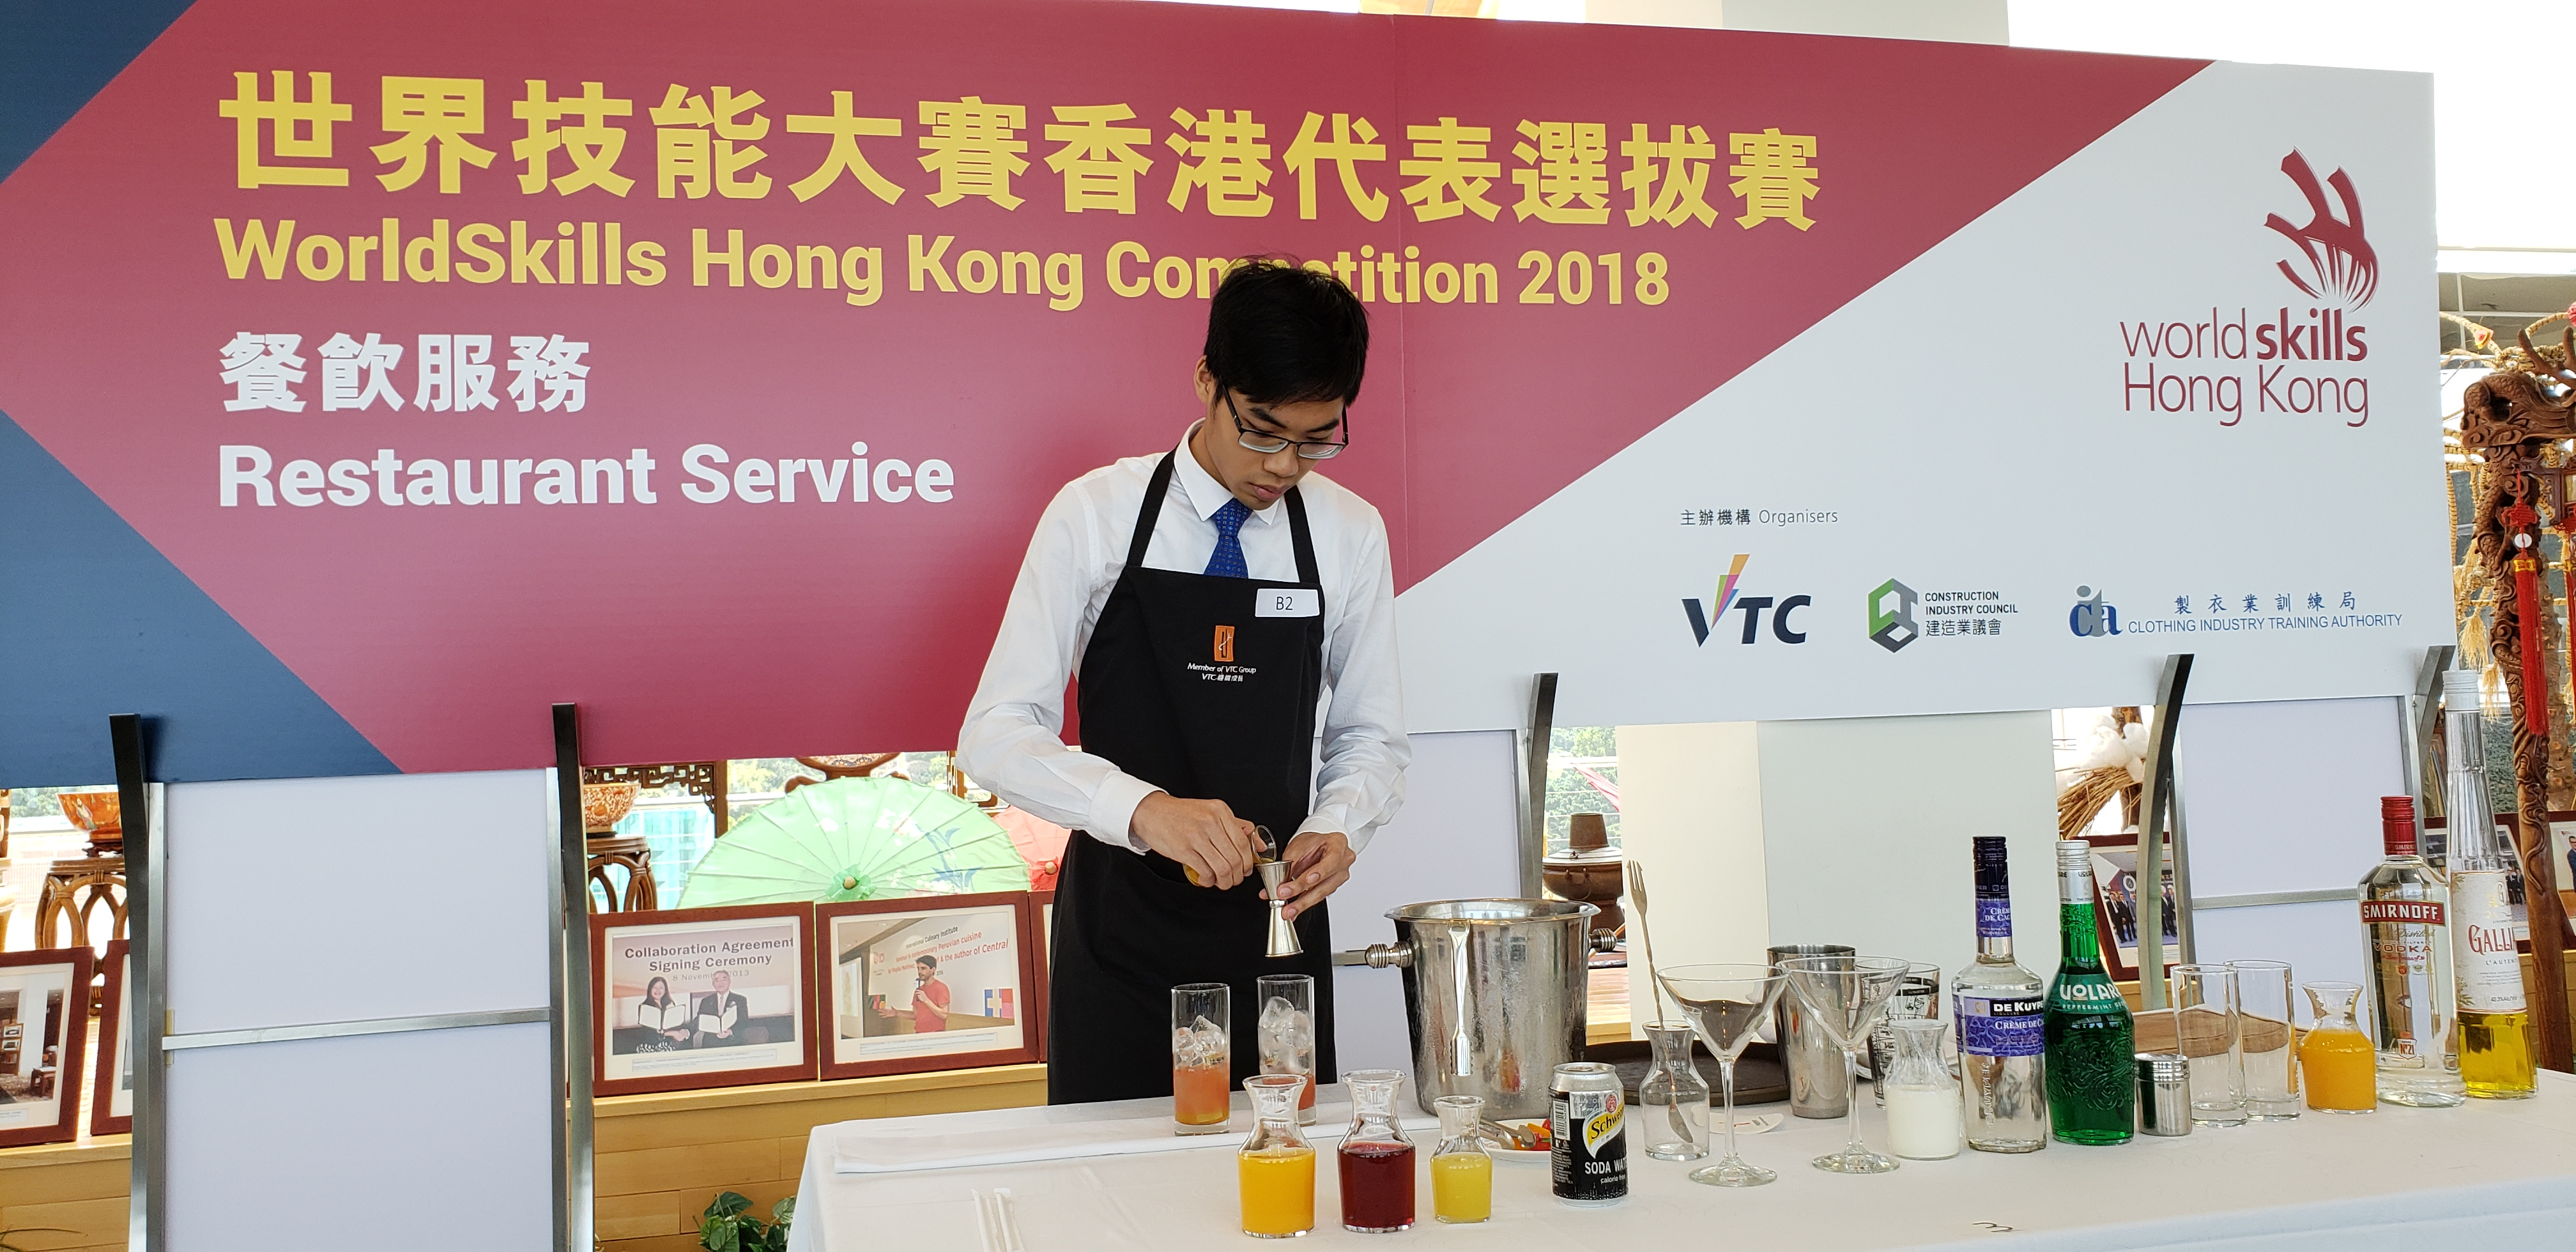 WorldSkills Hong Kong Competition 2018